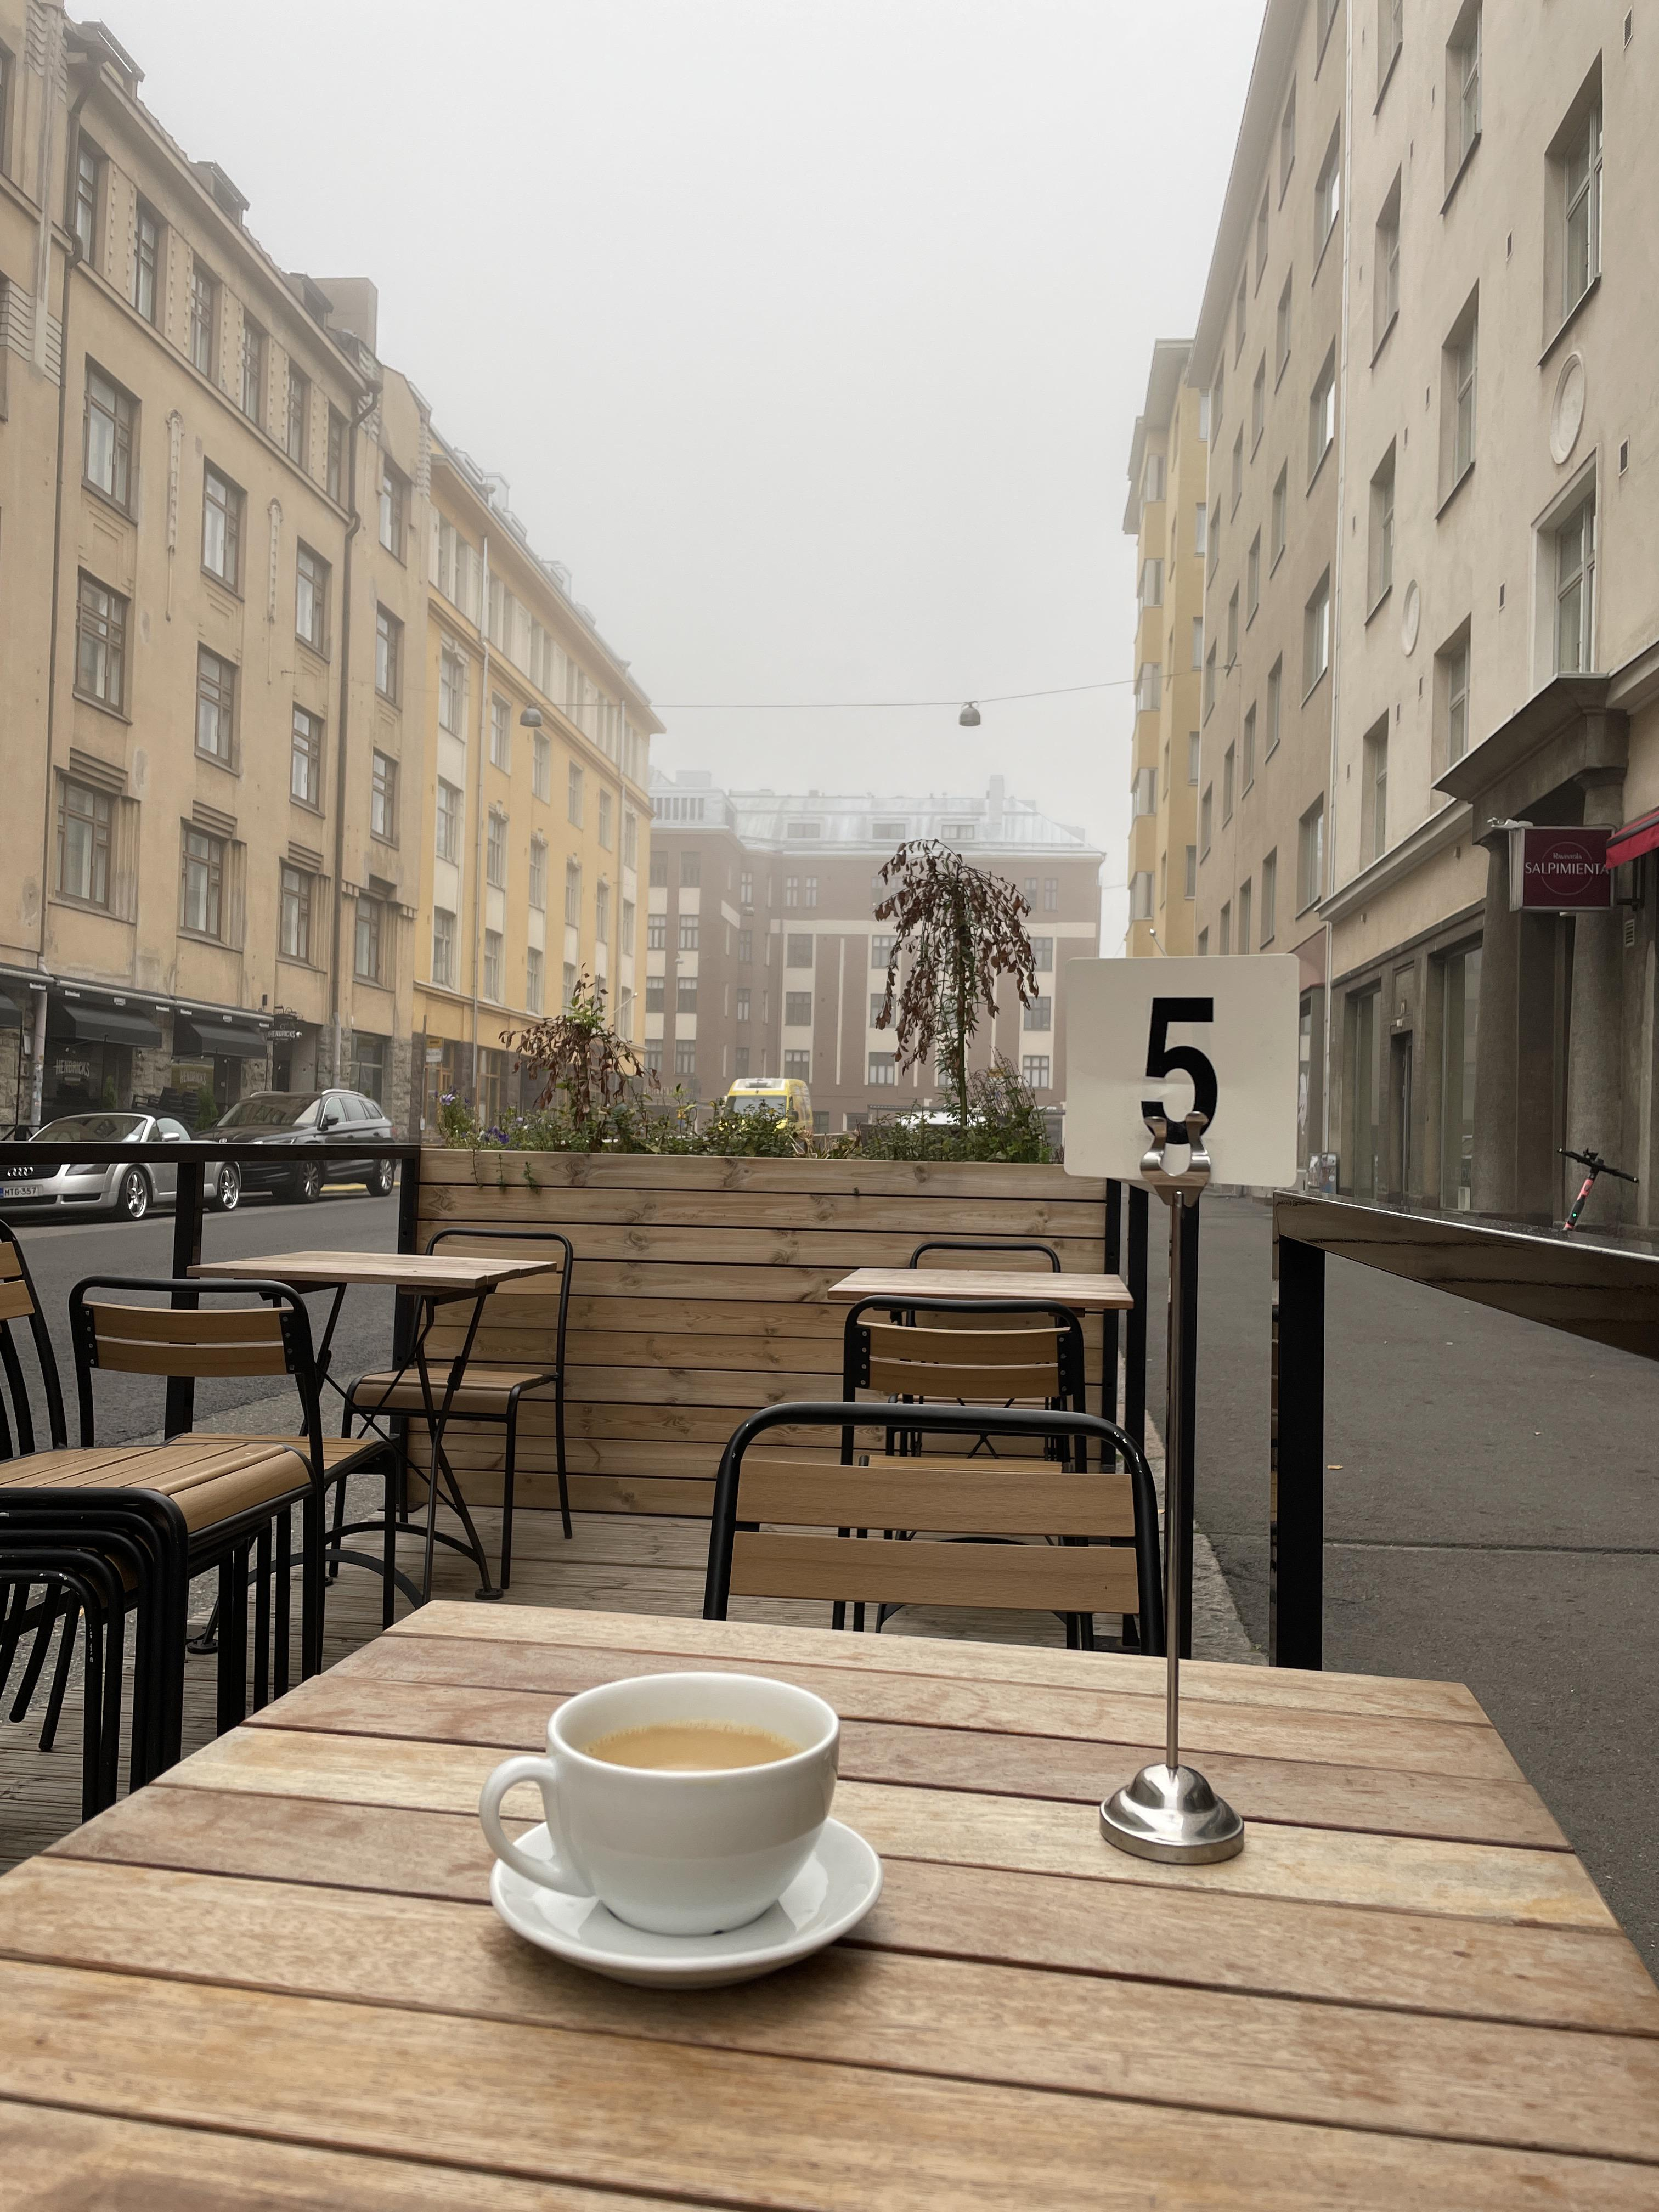 Have a nice Saturday morning from Helsinki, Finland